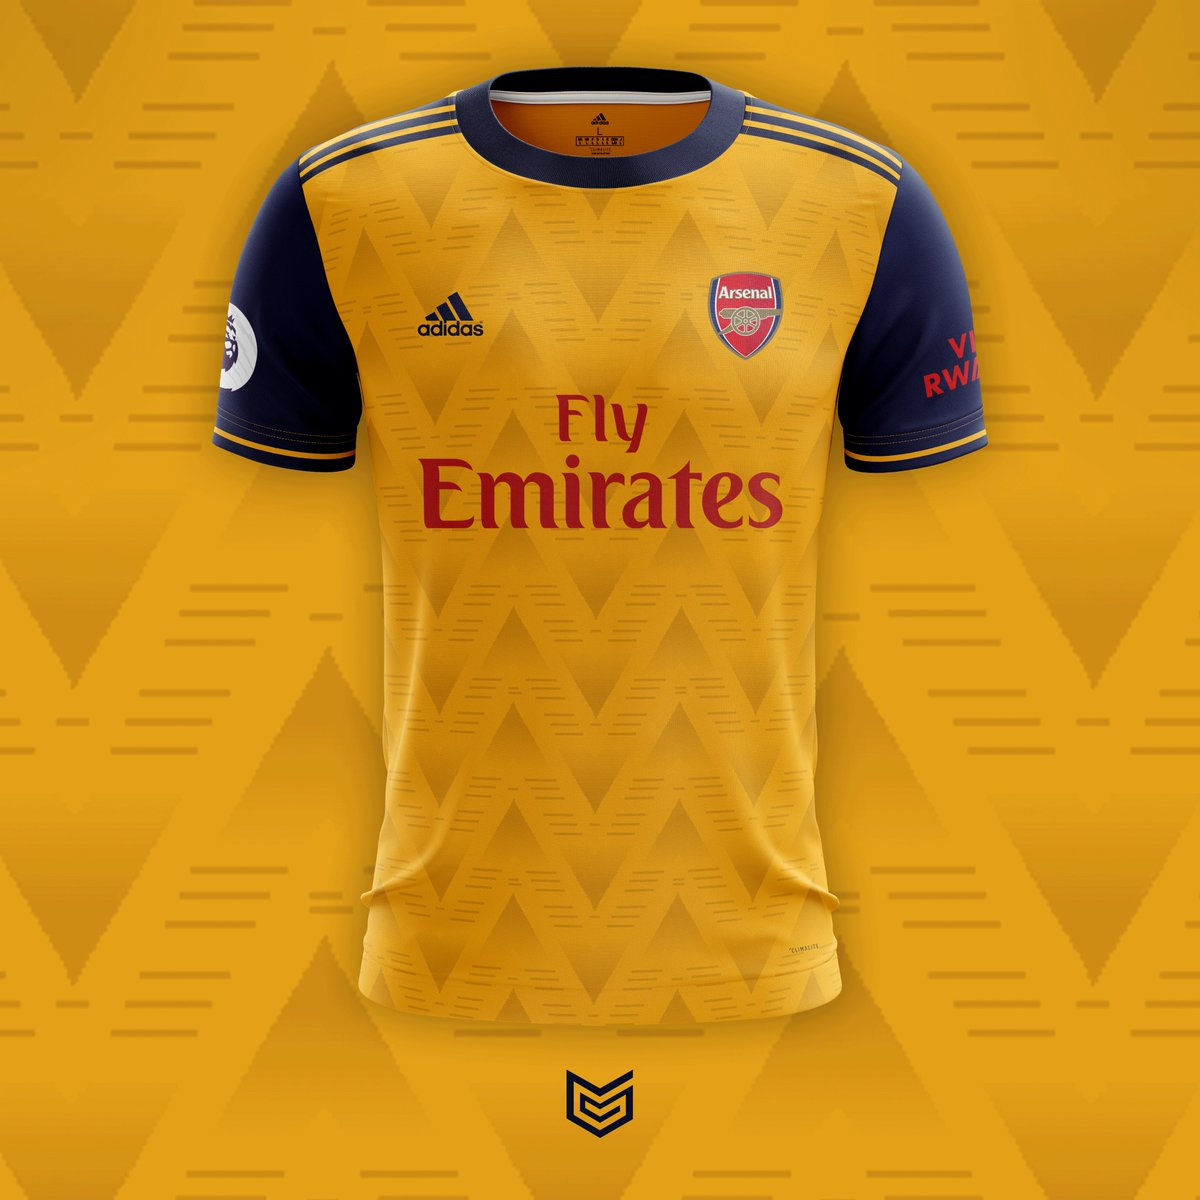 a62c1f3a149 Arsenal x Adidas 2019 20 Concept Away Kit Inspired by the famous   Bruised